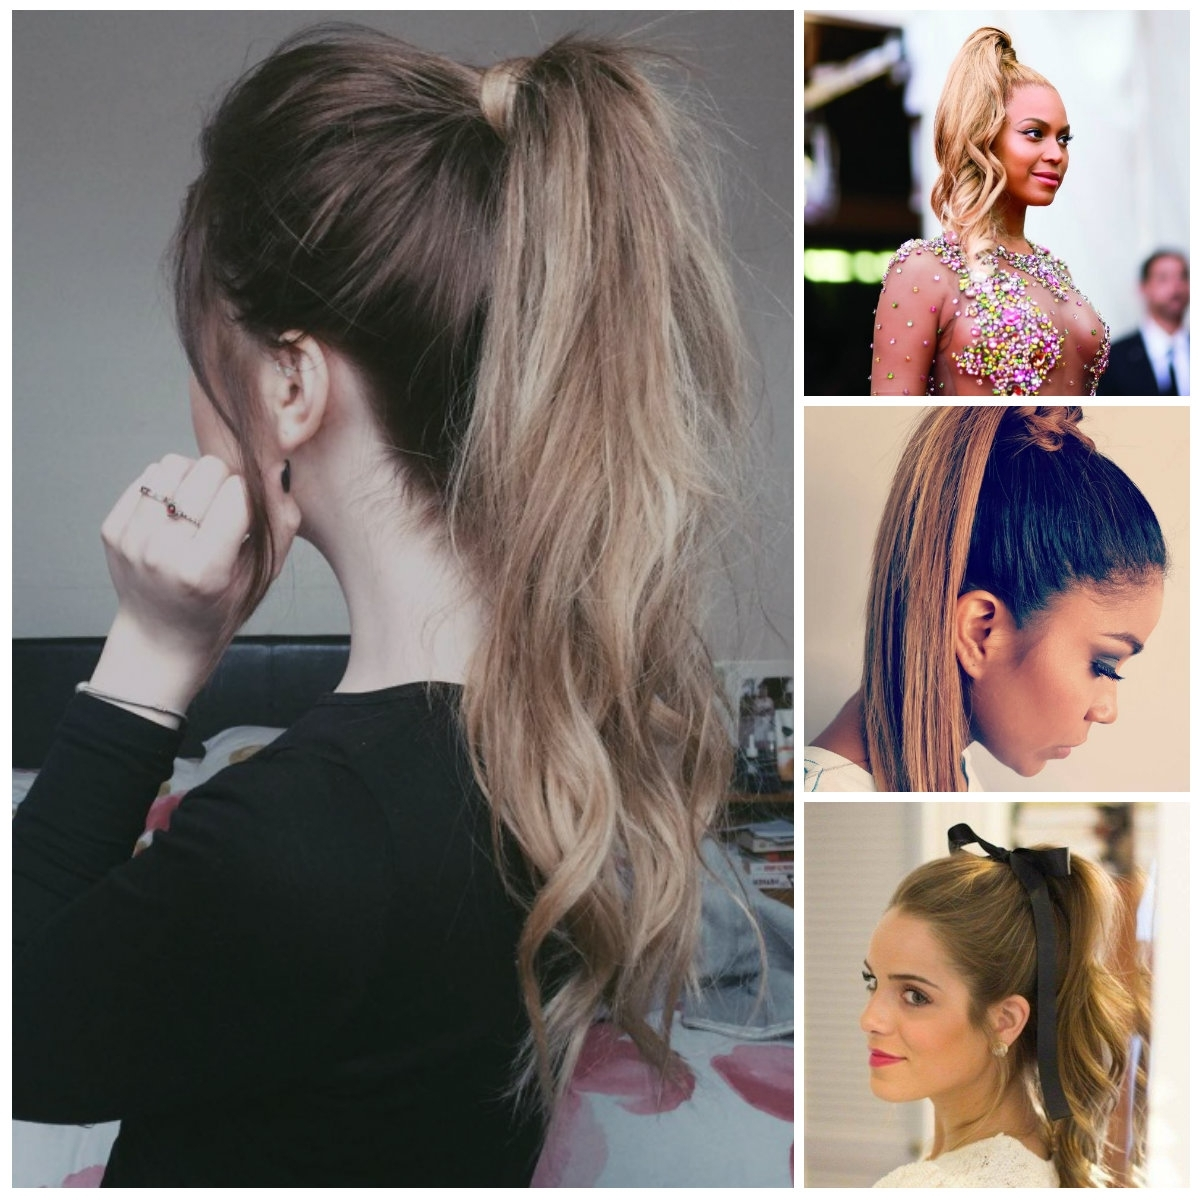 Well Liked High Pony Hairstyles With Contrasting Bangs Within Hairstyles With Bangs (View 19 of 20)